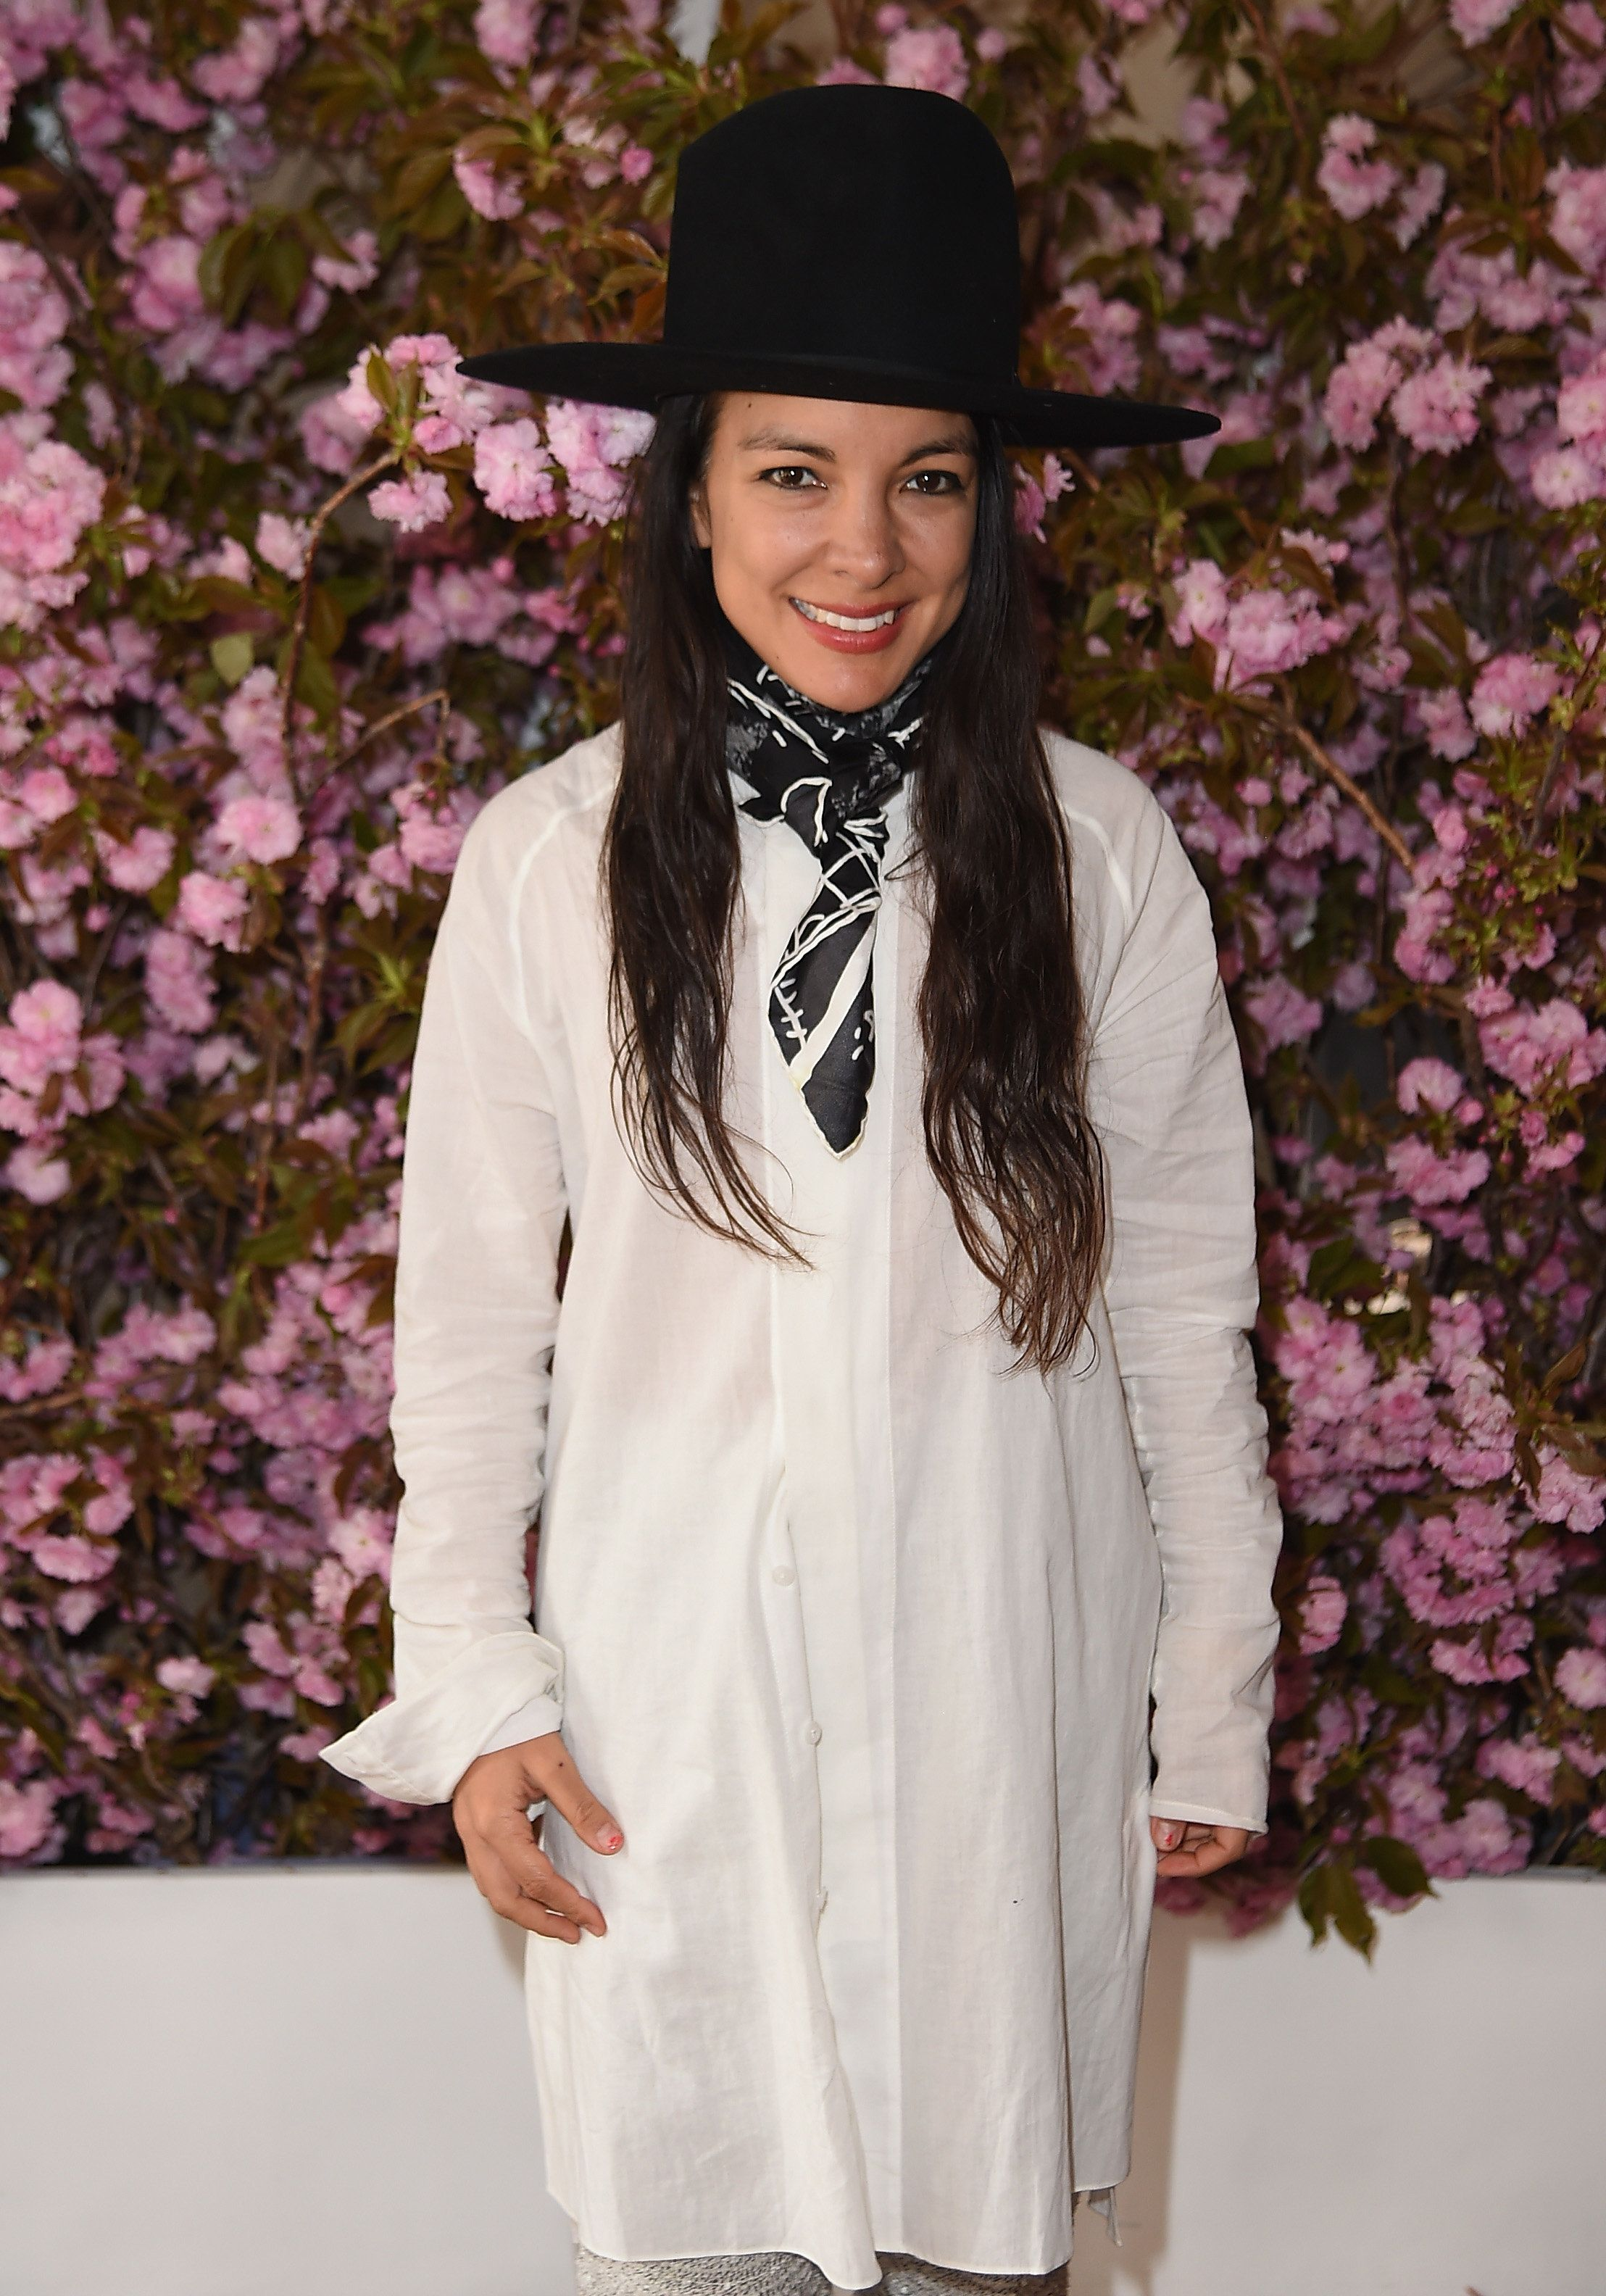 NEW YORK, NY - APRIL 27:  Thinx Co-founder Miki Agrawal attends Glamour and L'Oreal Paris Celebrate 2016 College Women Of The Year at NoMad Hotel Rooftop on April 27, 2016 in New York City.  (Photo by Nicholas Hunt/Getty Images for Glamour)